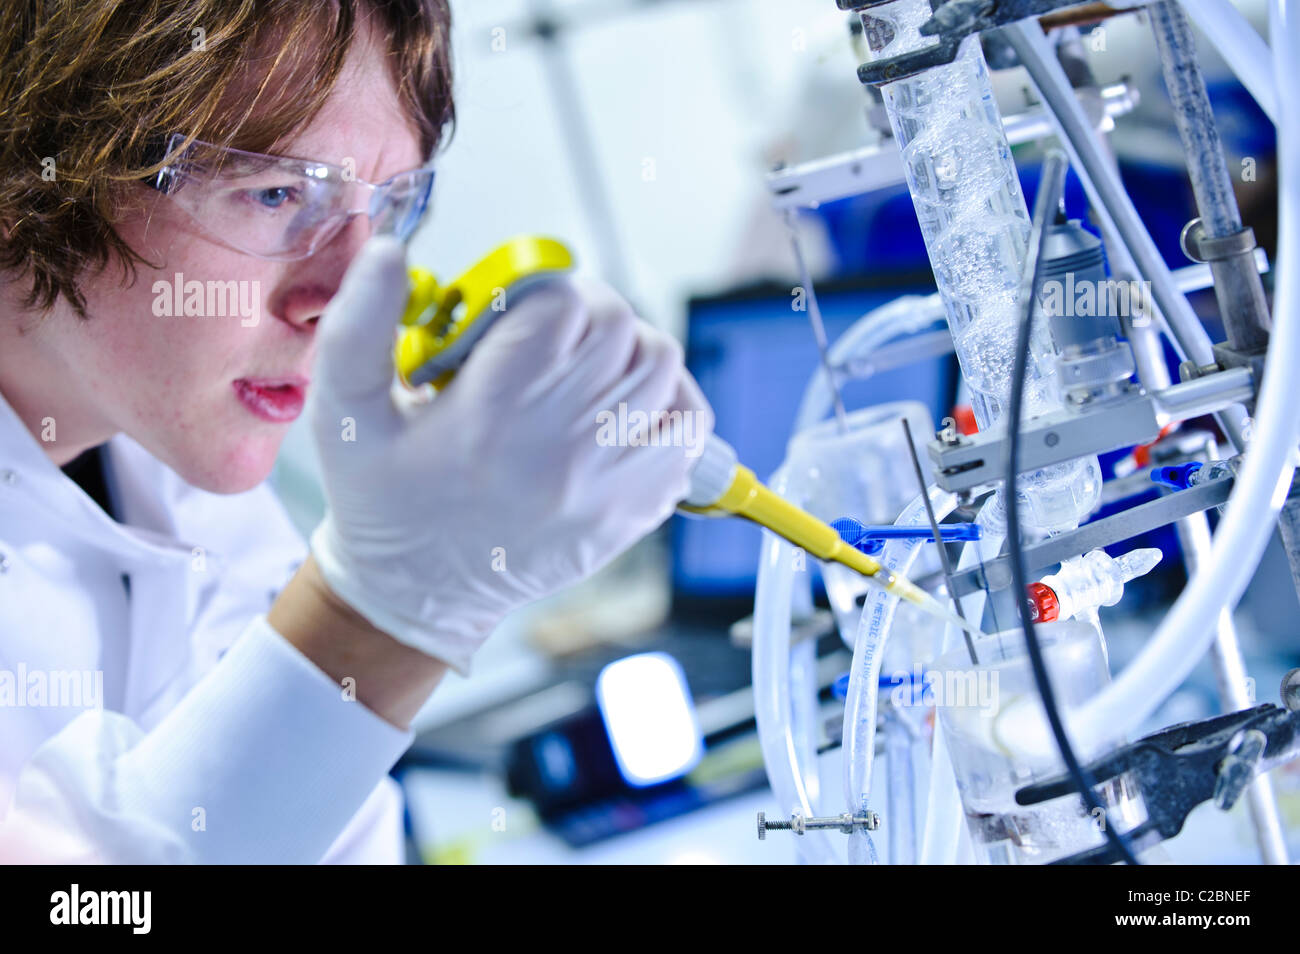 Young male scientist wearing goggles and white lab coat pipetting into scientific apparatus in science lab - Stock Image